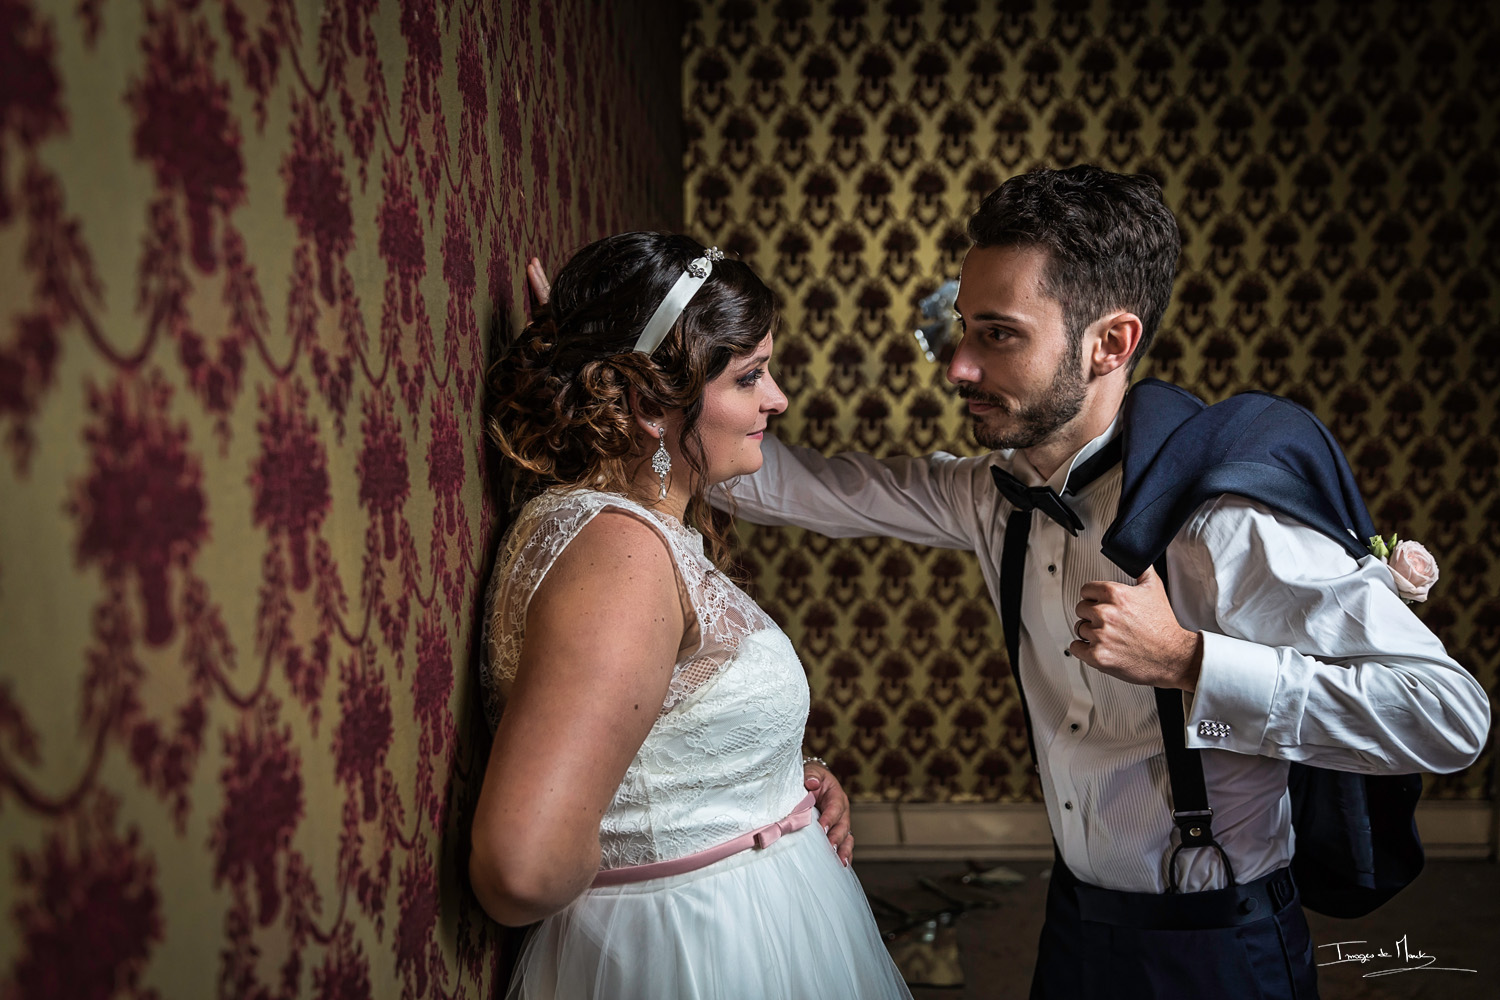 photographe mariage strasbourg alsace lorraine séance couple day after yvan marck imagesdemarck